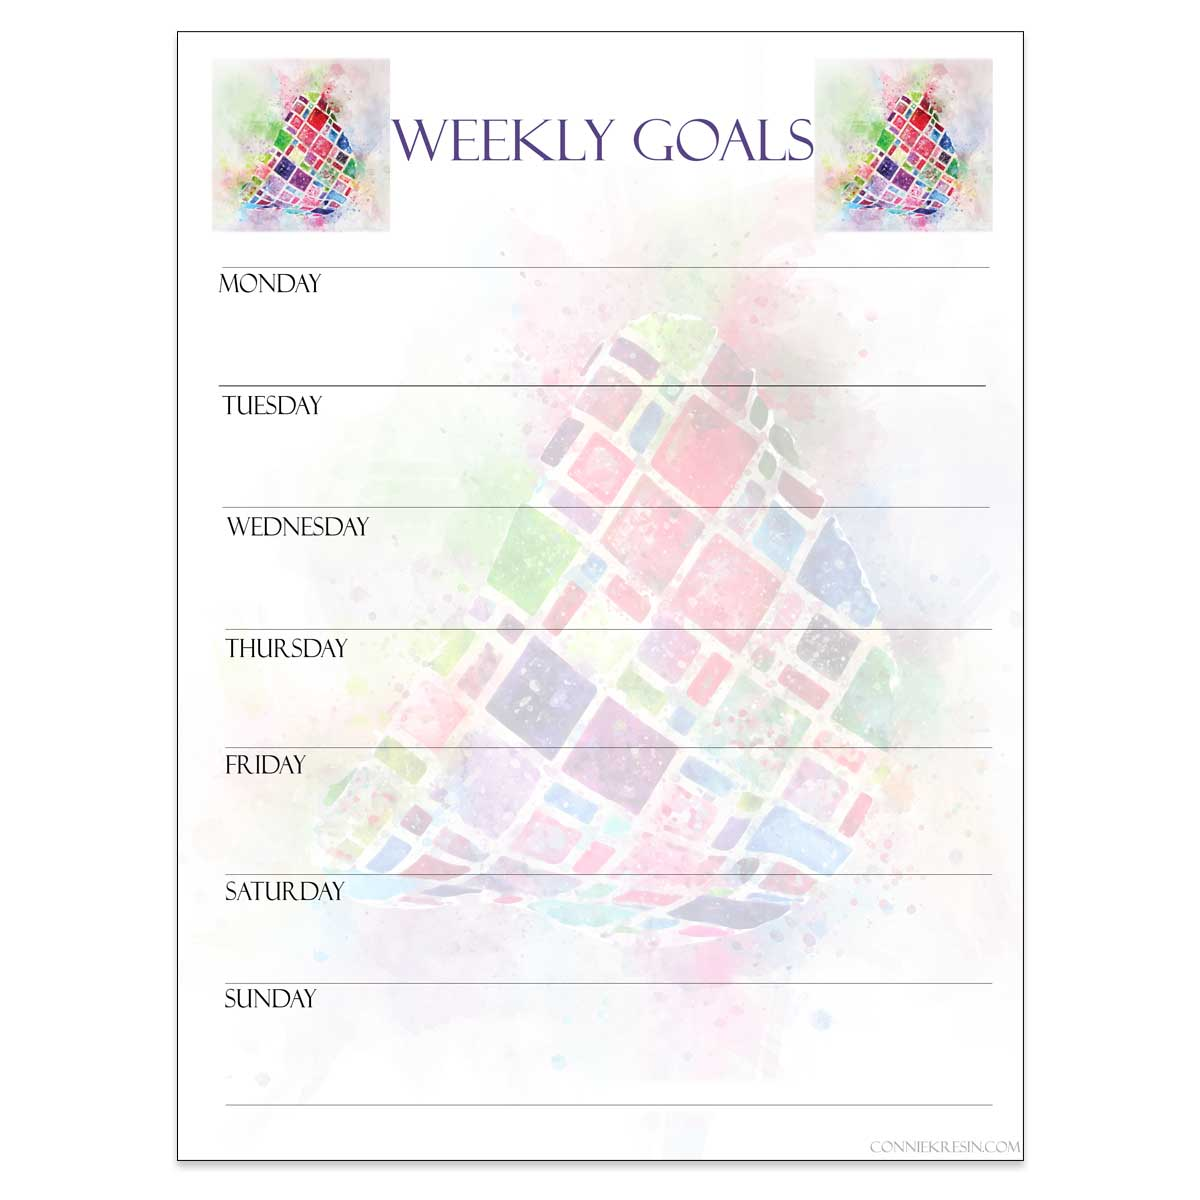 Weekly Goals starting on Monday